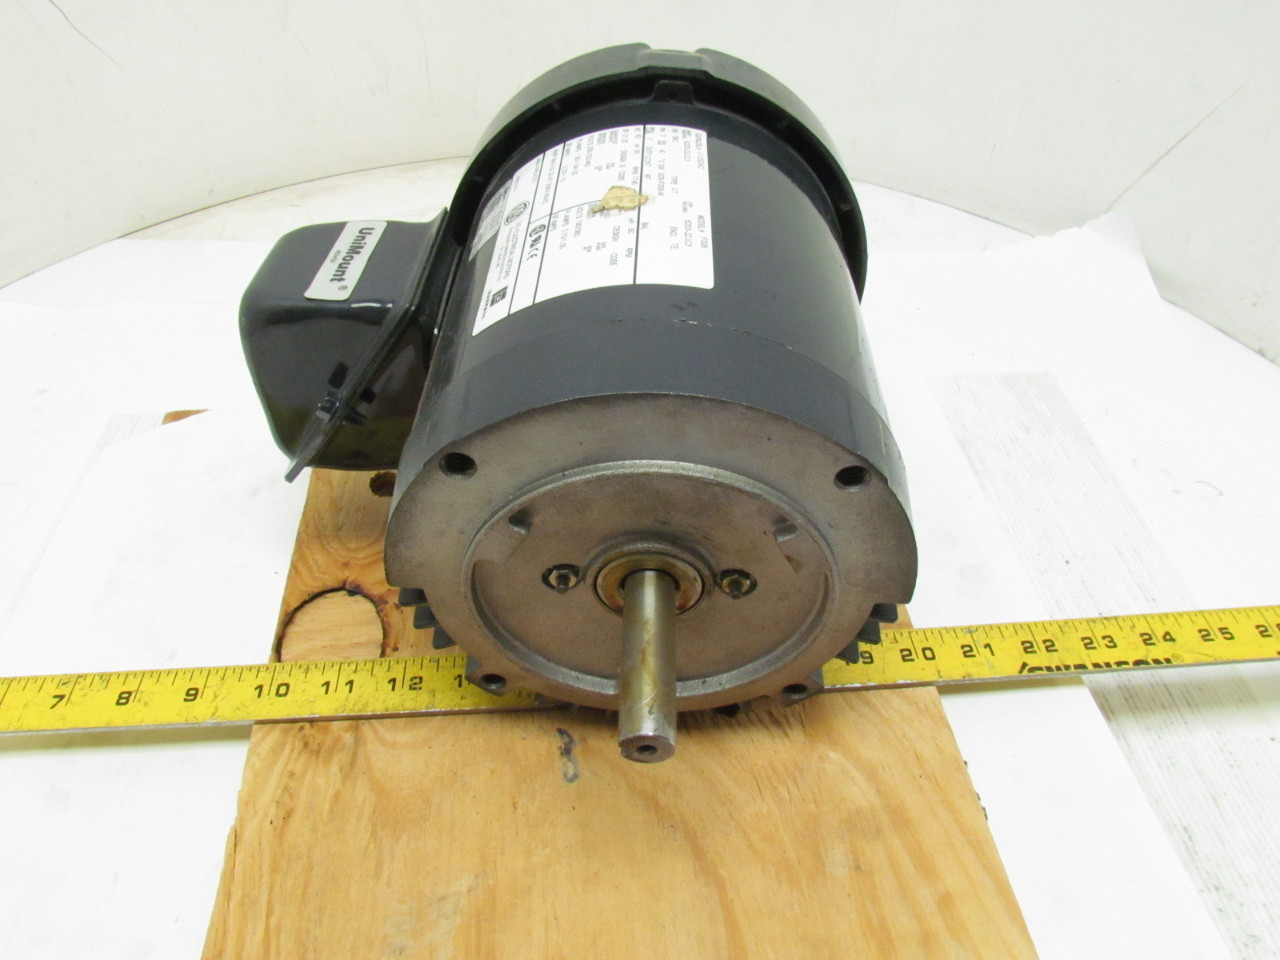 Us motors u12s2ac 3 phase electric motor 50hp 1745 rpm for 56c frame motor dimensions